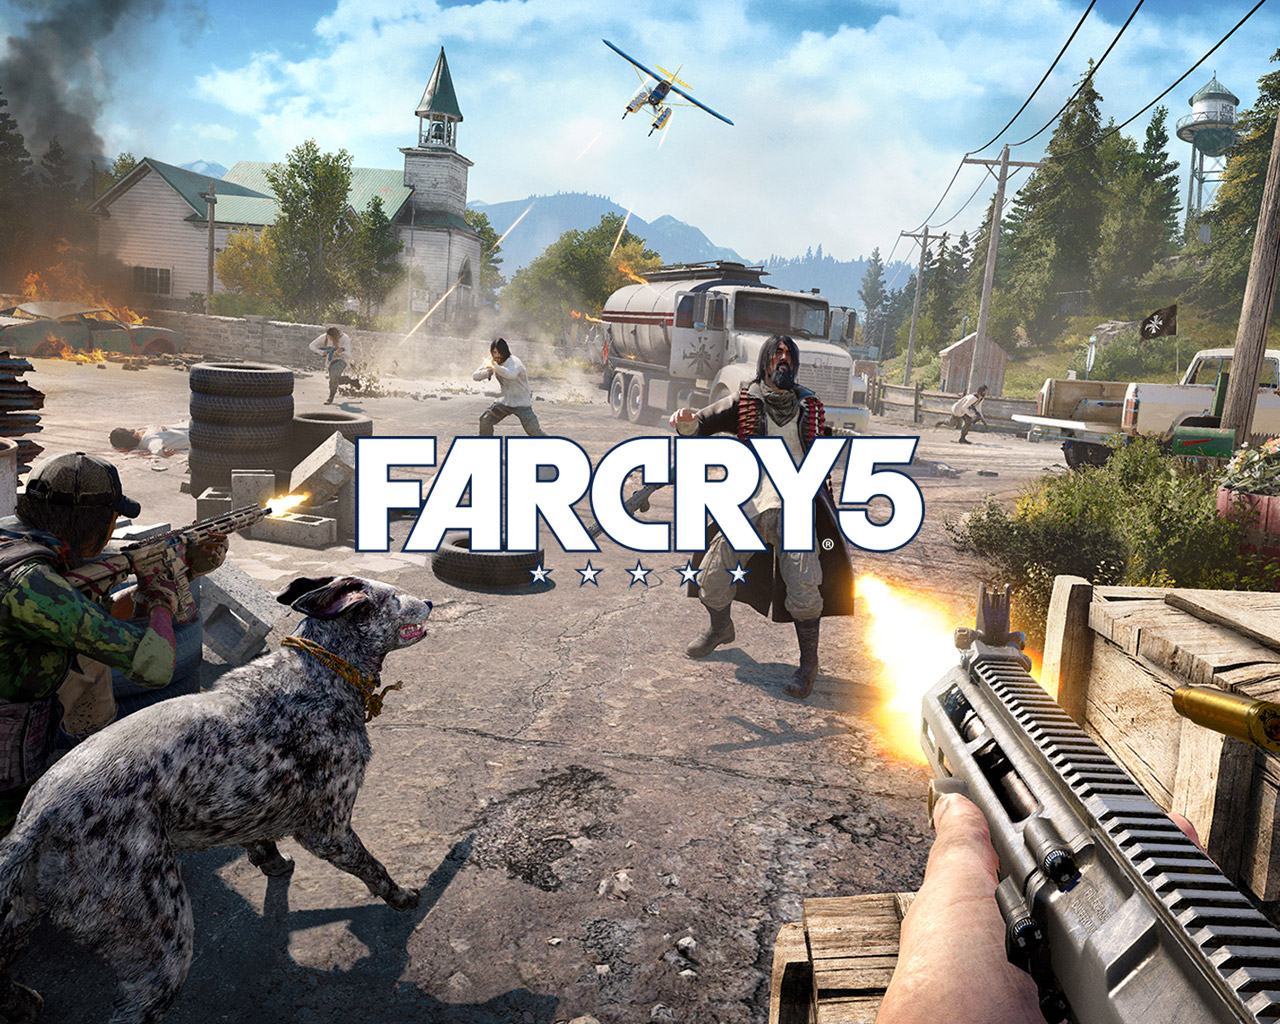 Far Cry 5 Wallpaper in 1280x1024